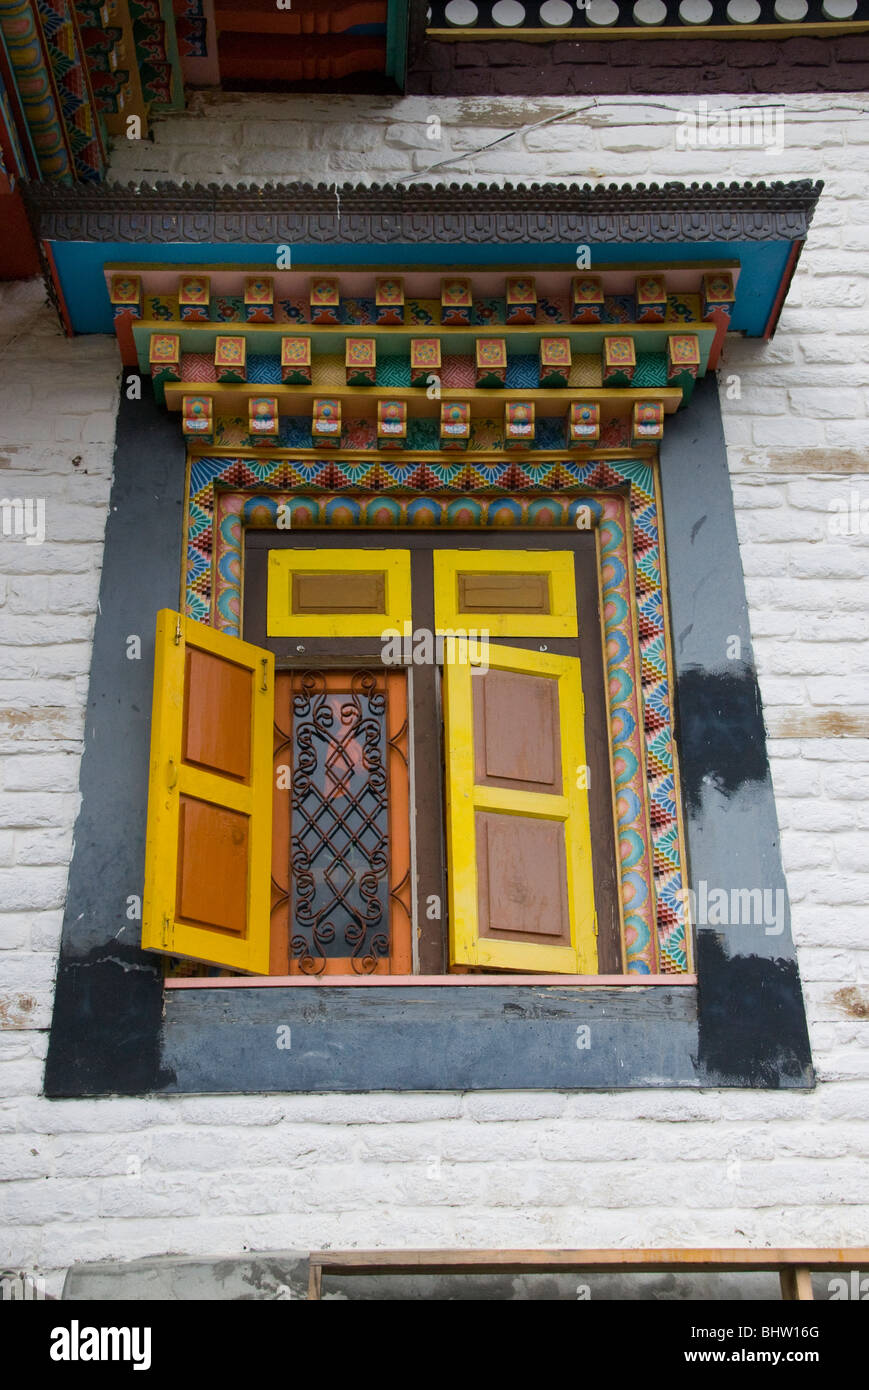 Decorated window in Ghompa at Monastery in Upper Pisang, Annapurna Circuit, Nepal - Stock Image